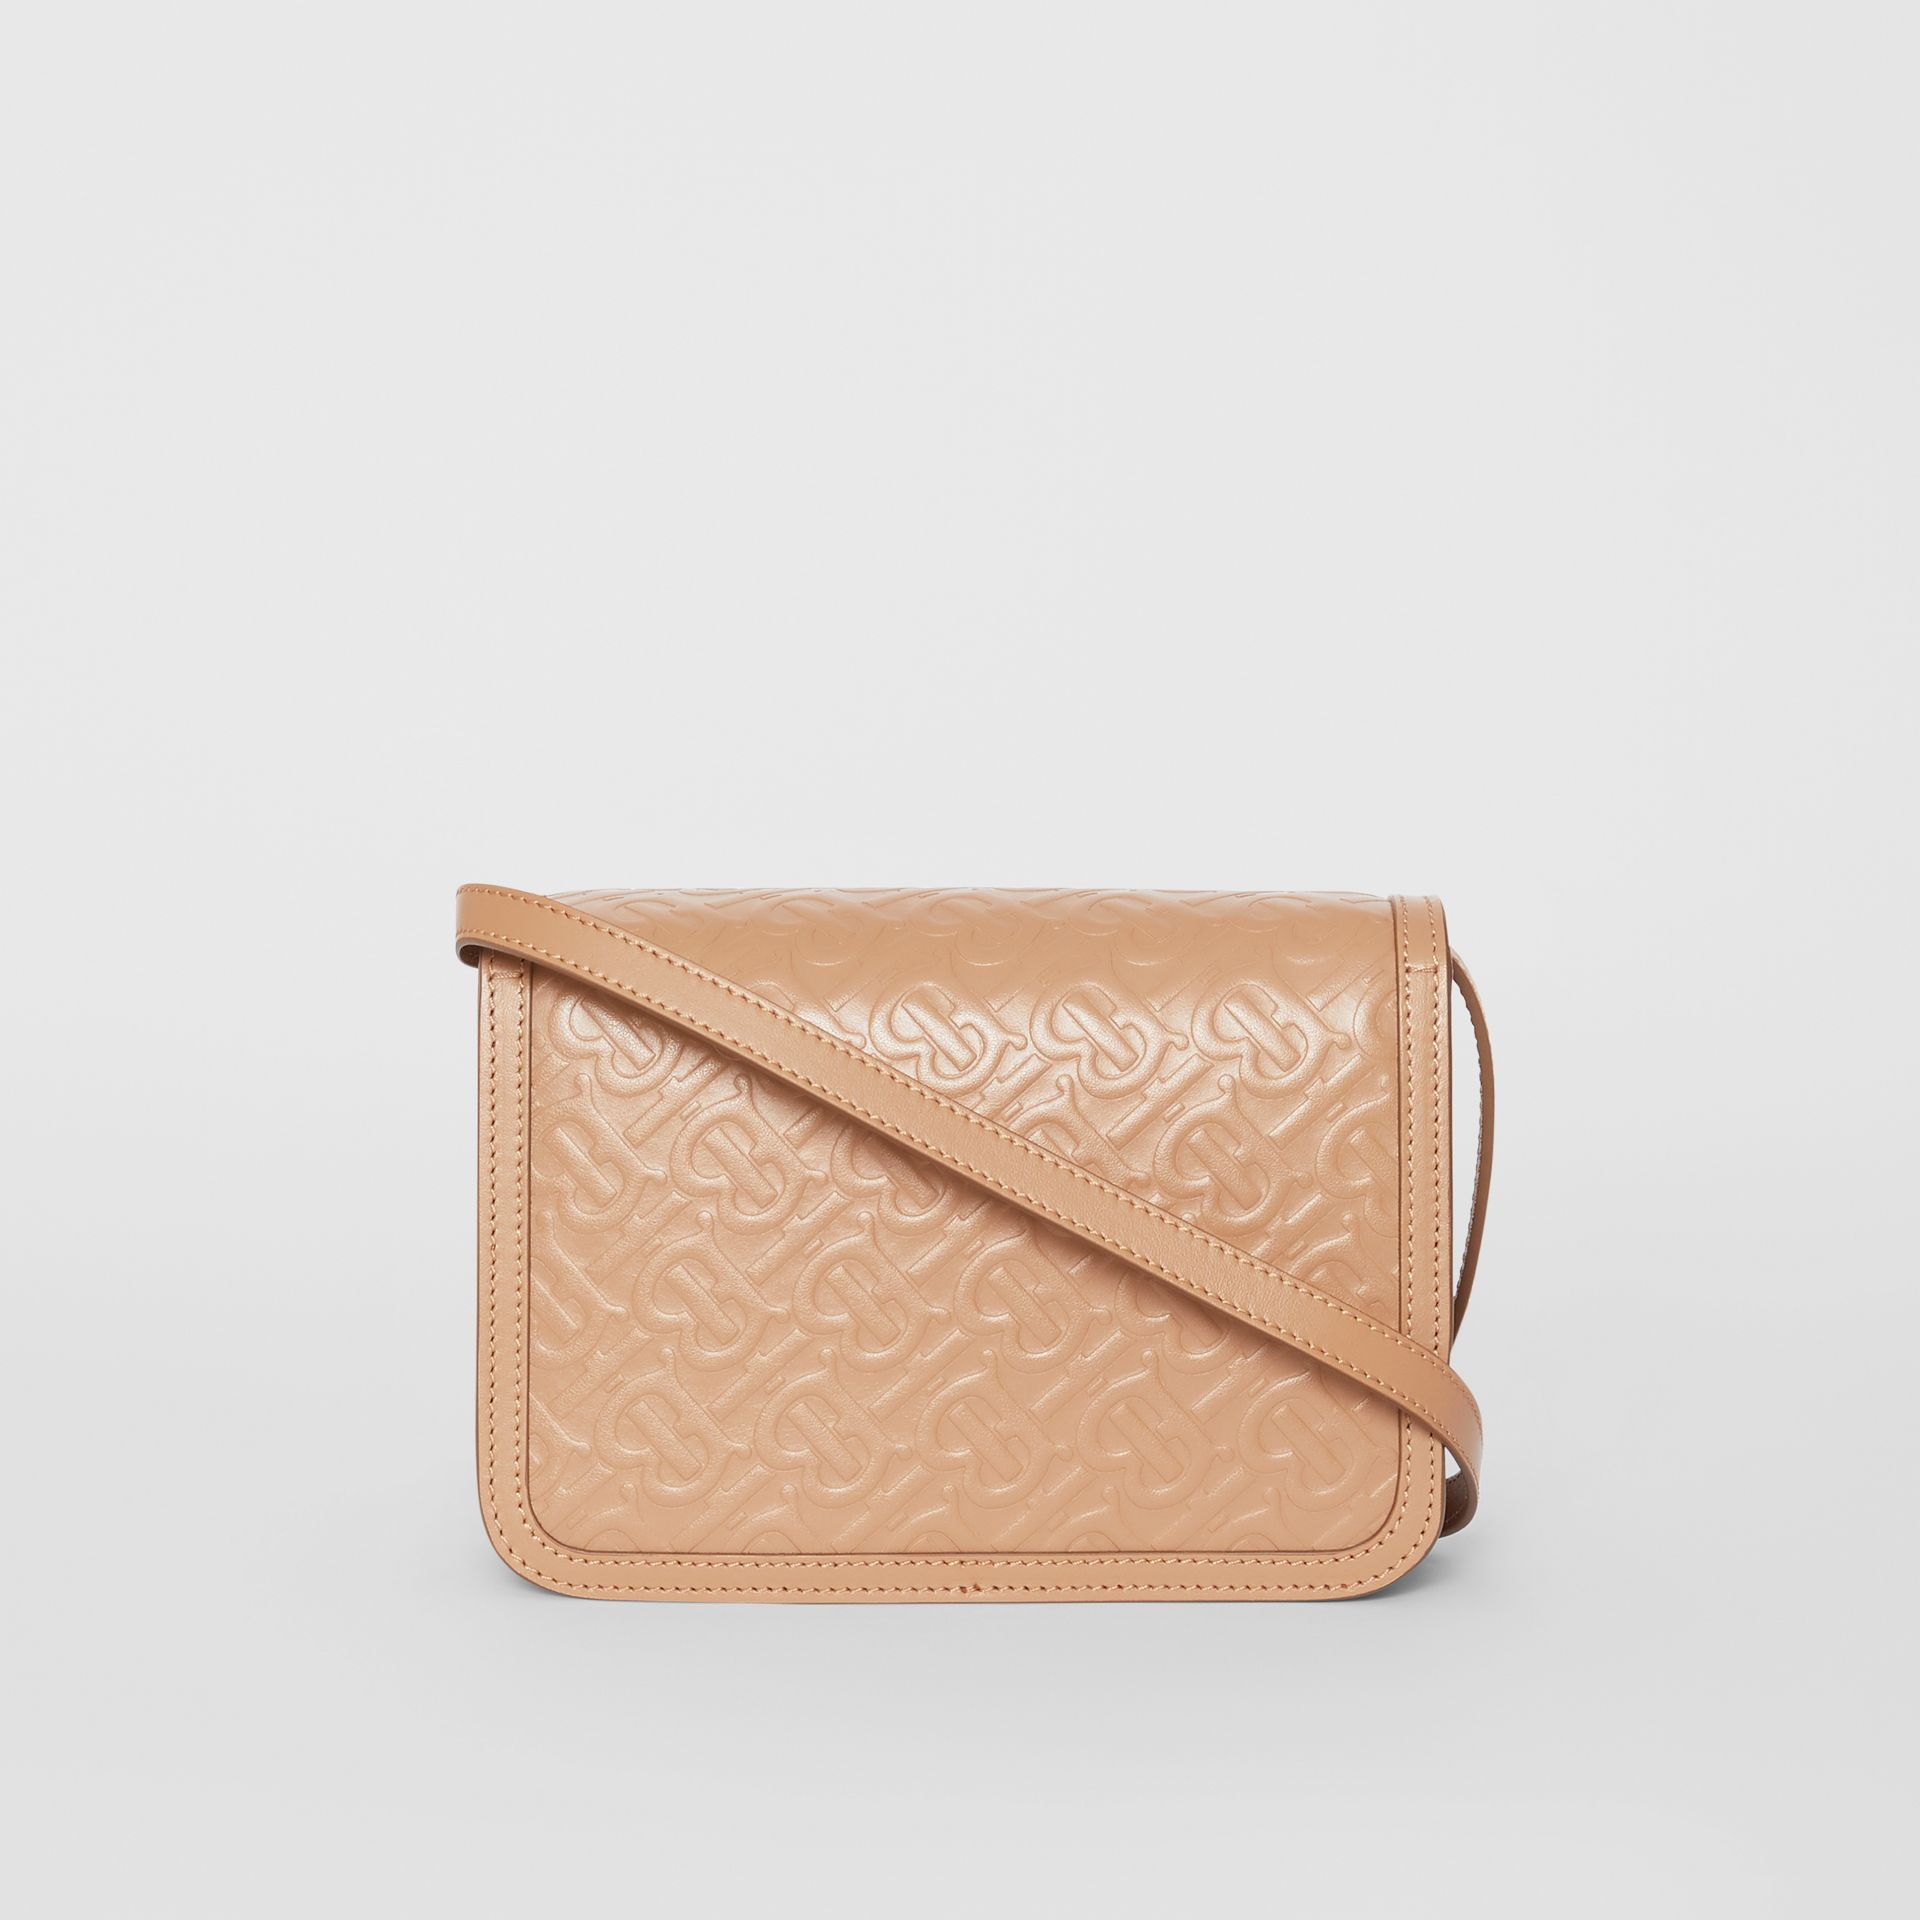 Small Monogram Leather TB Bag in Light Camel - Women | Burberry - gallery image 7